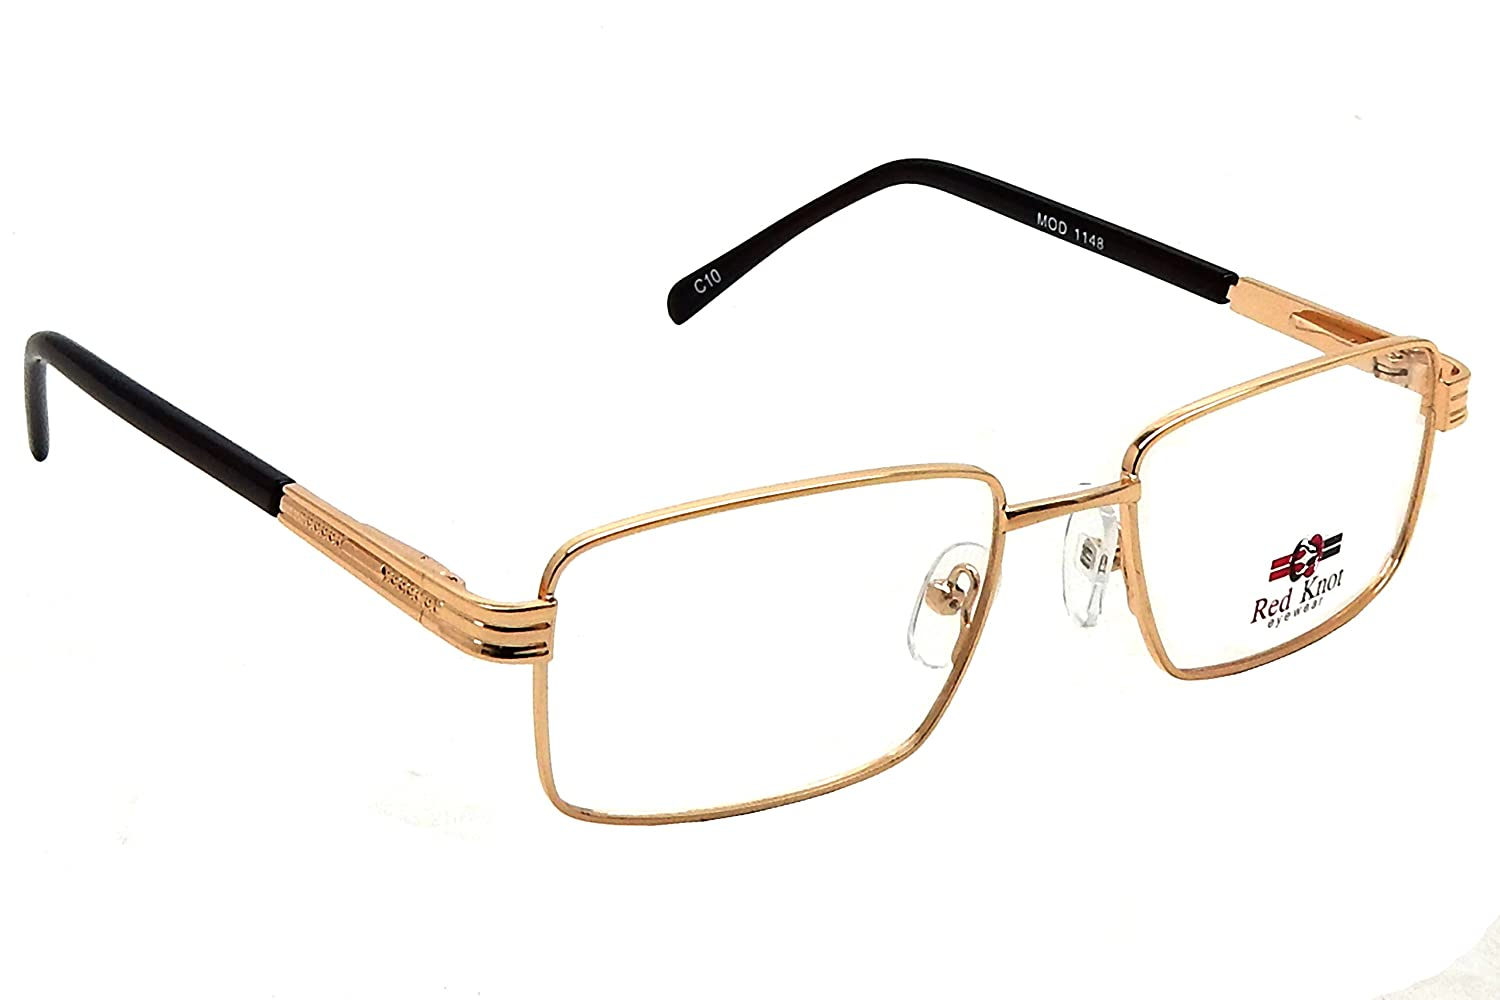 Redknot Shoes Tech Brown Red Knot Full Rim Golden Metal Spetacle Frames Mod 1148 Clothing Accessories